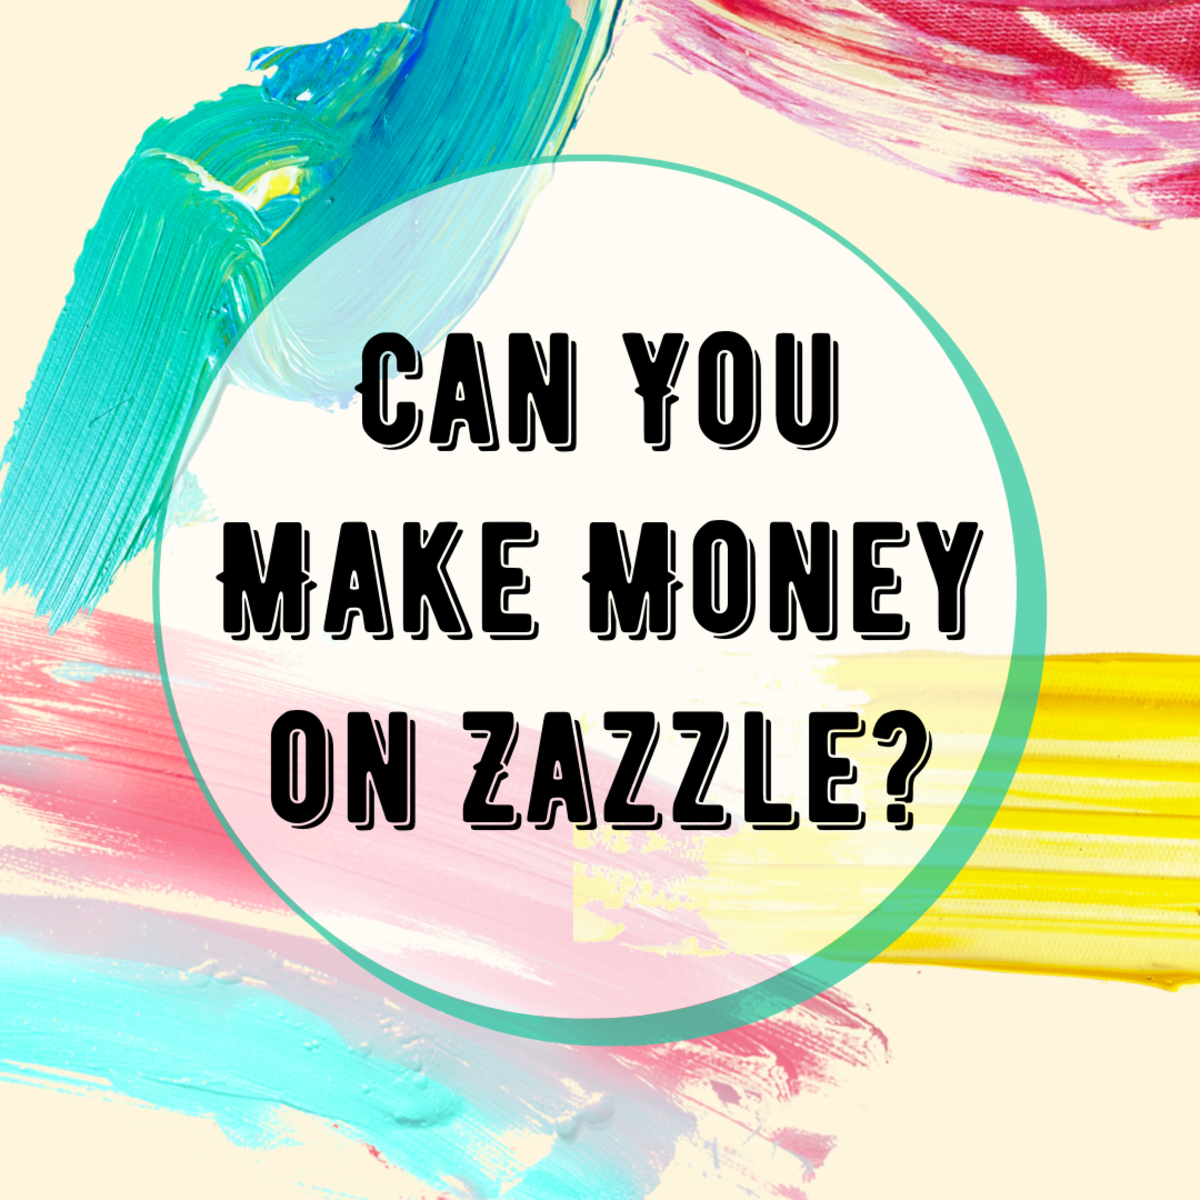 Take a look at the money-making potential on Zazzle.